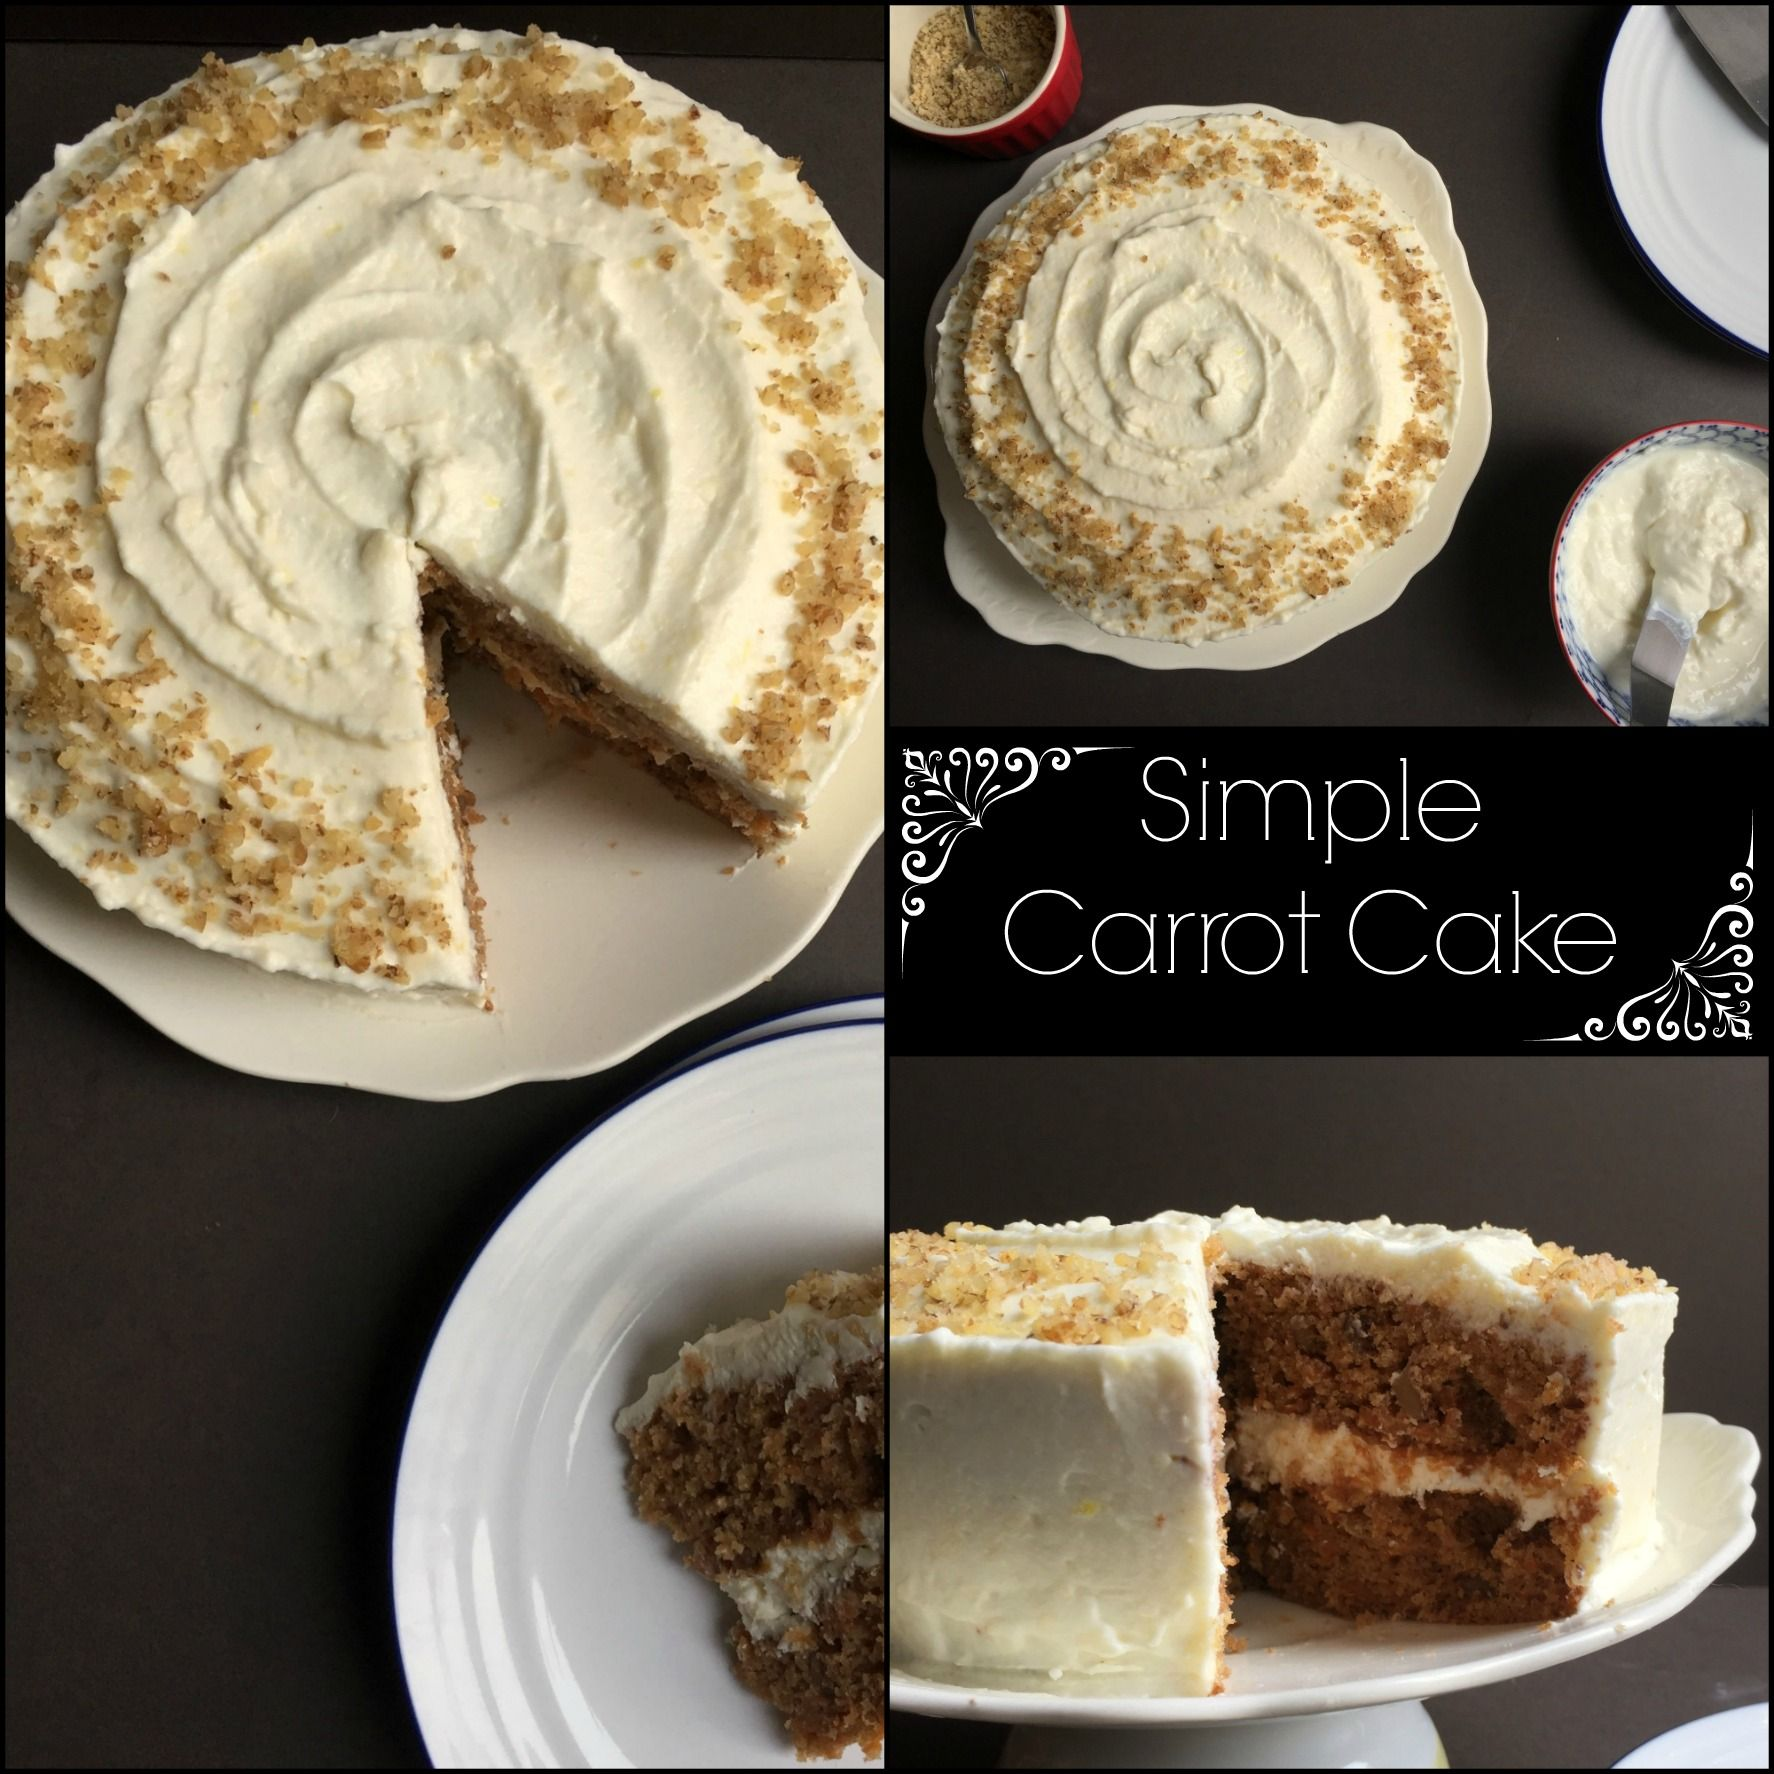 A recipe for simple carrot cake from women talking